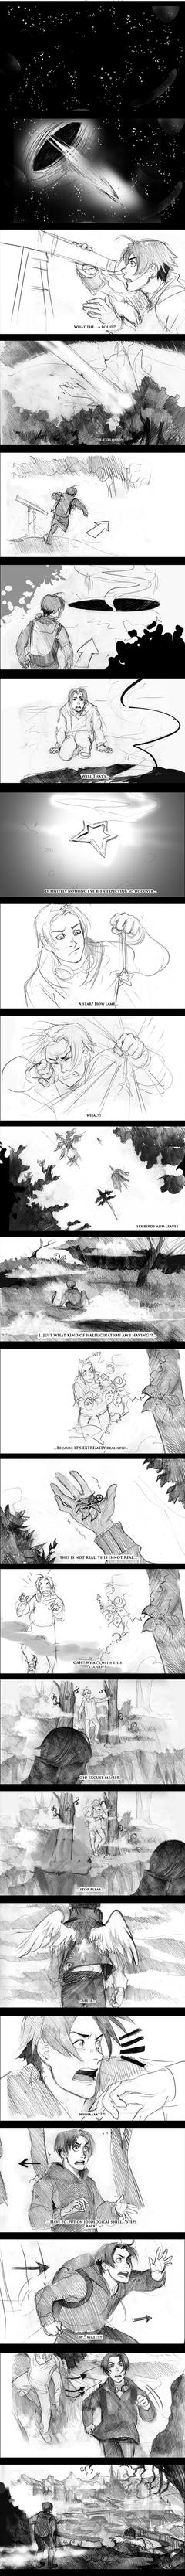 Far Beyond the World Trailer storyboard 2 by Razuri-the-Sleepless